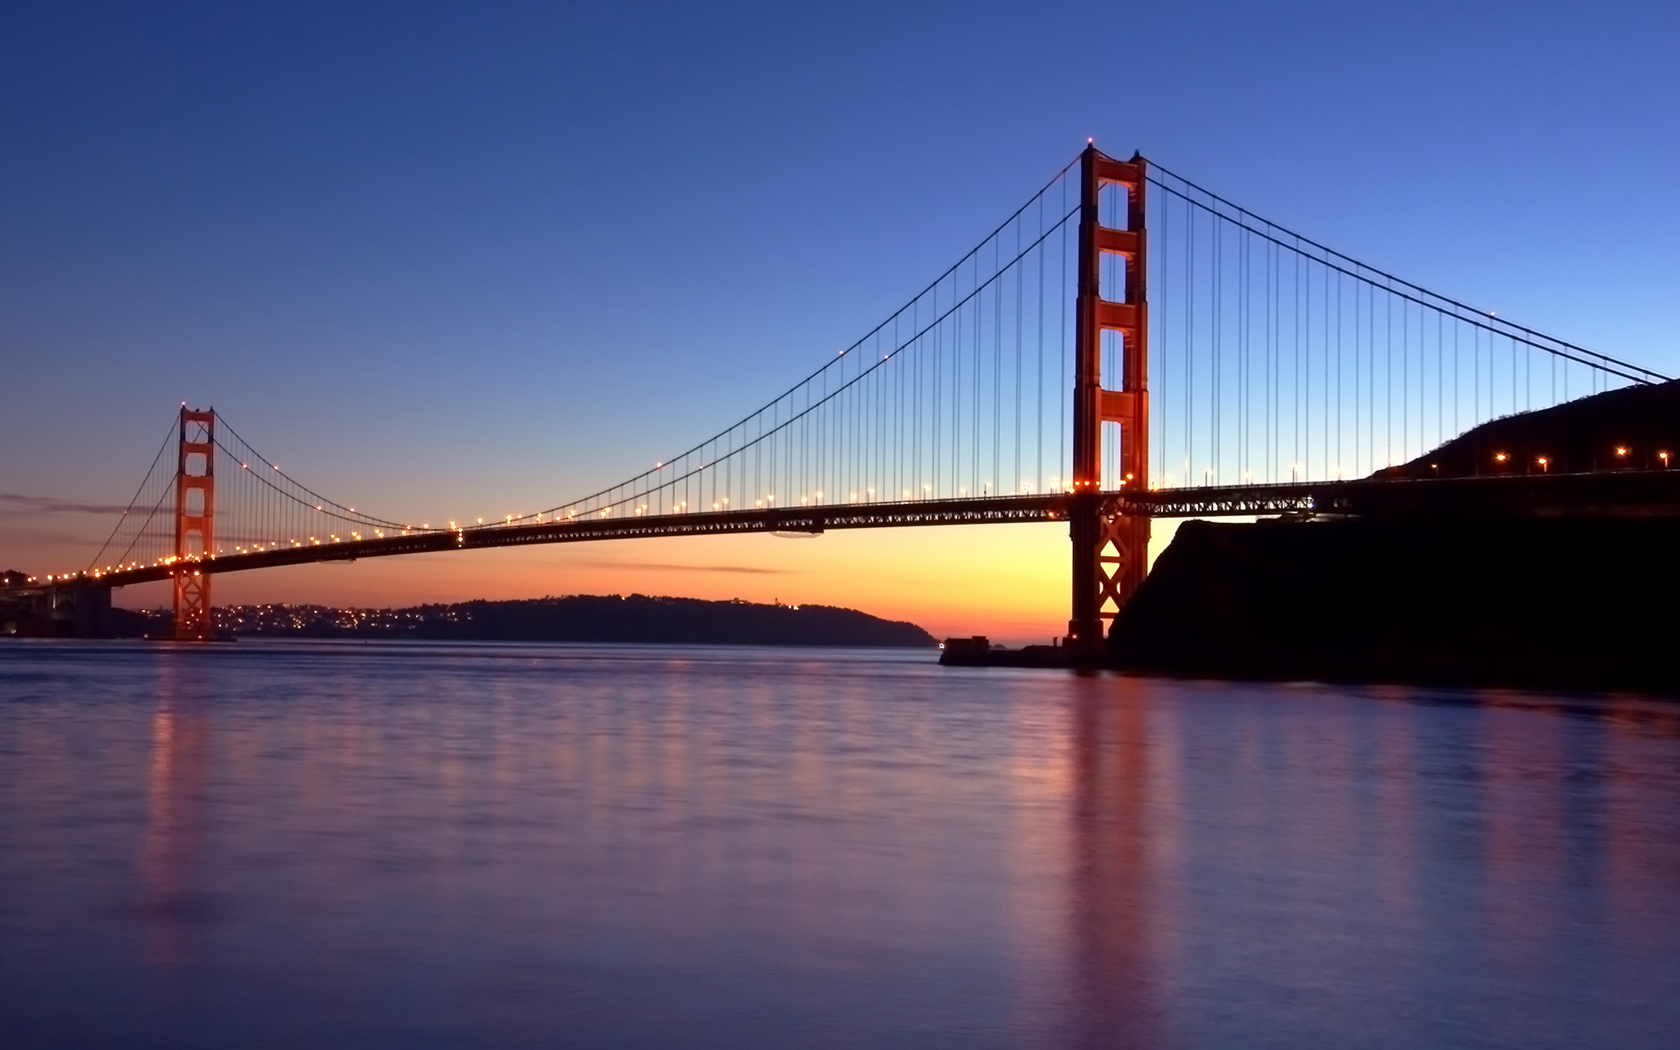 water sunset sunrise Bridges HD Wallpaper